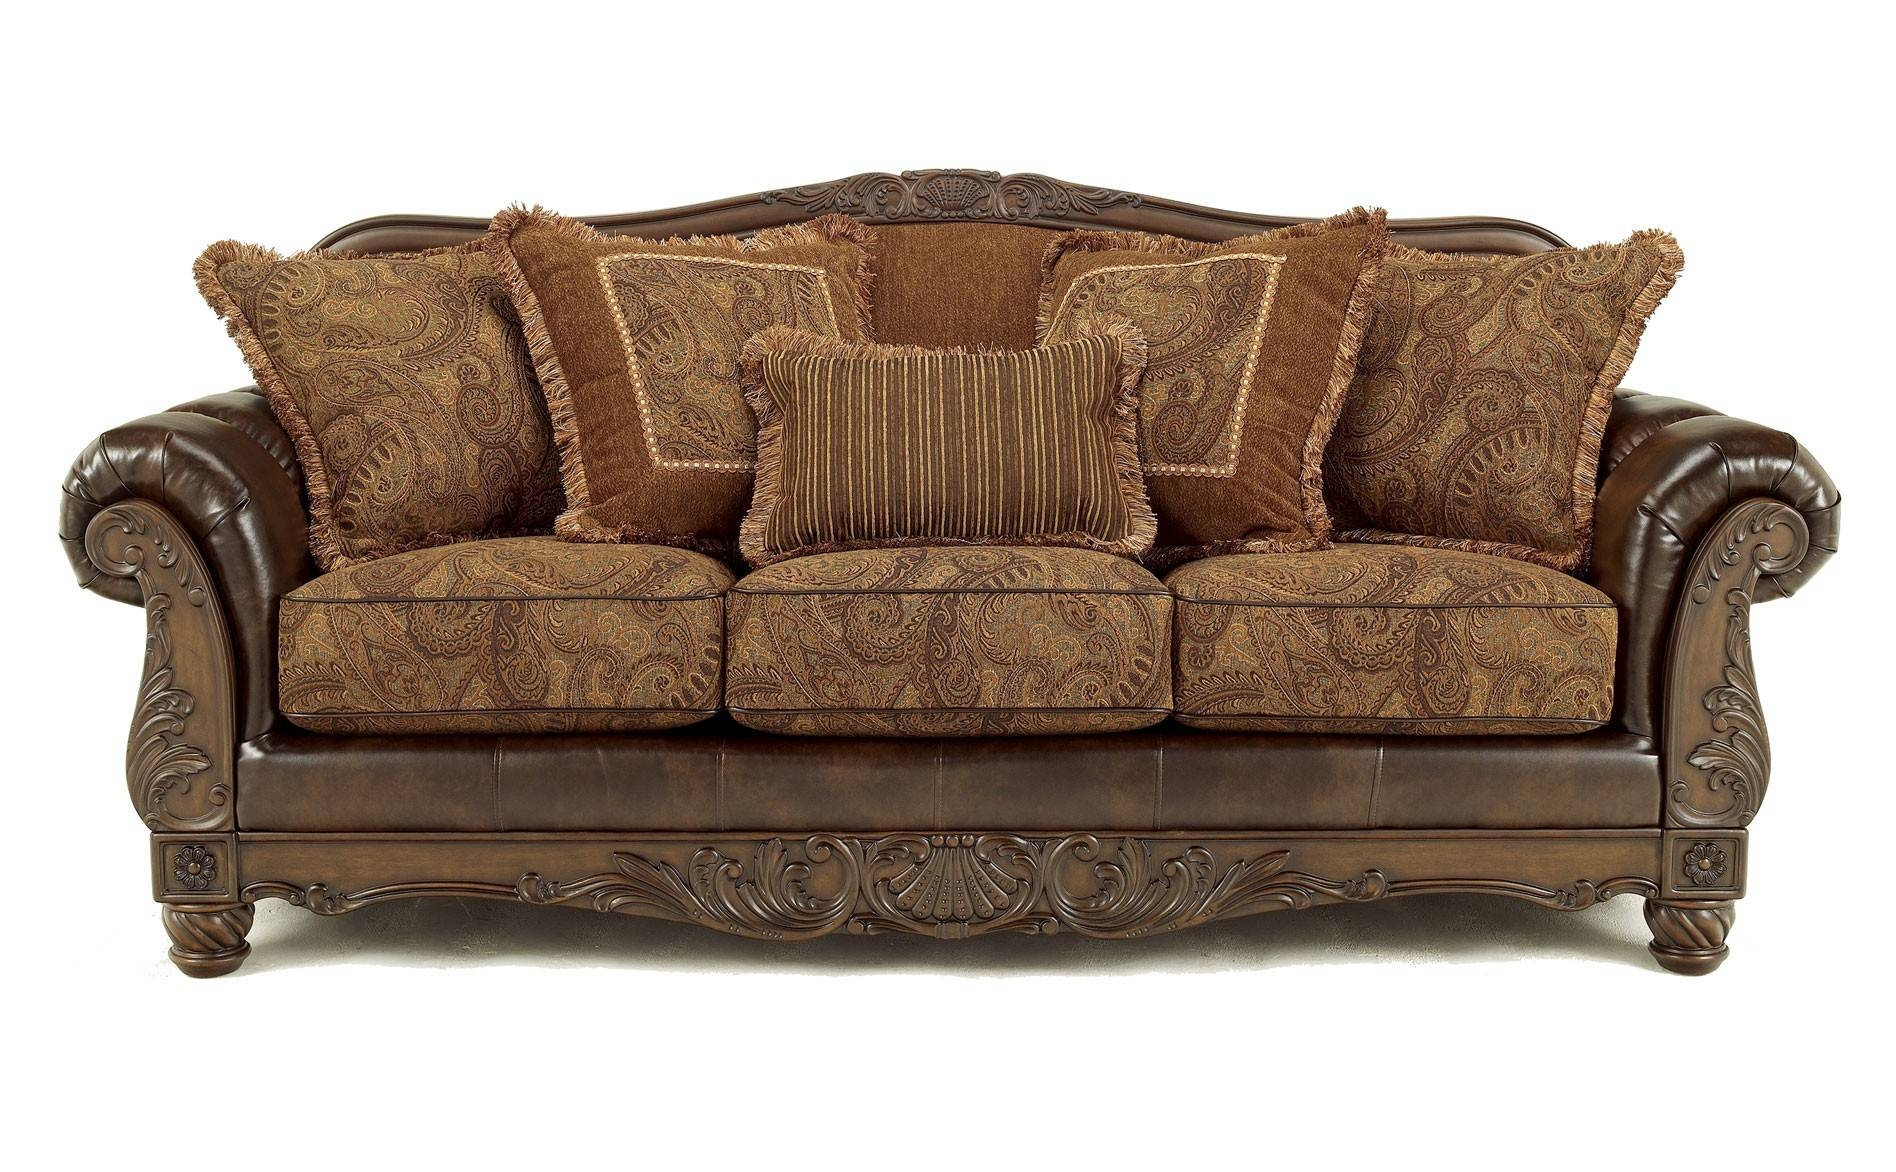 Old Fashioned Sofa Styles Know Your Antique Couch Sofa And Settee intended for Old Fashioned Sofas (Image 13 of 30)